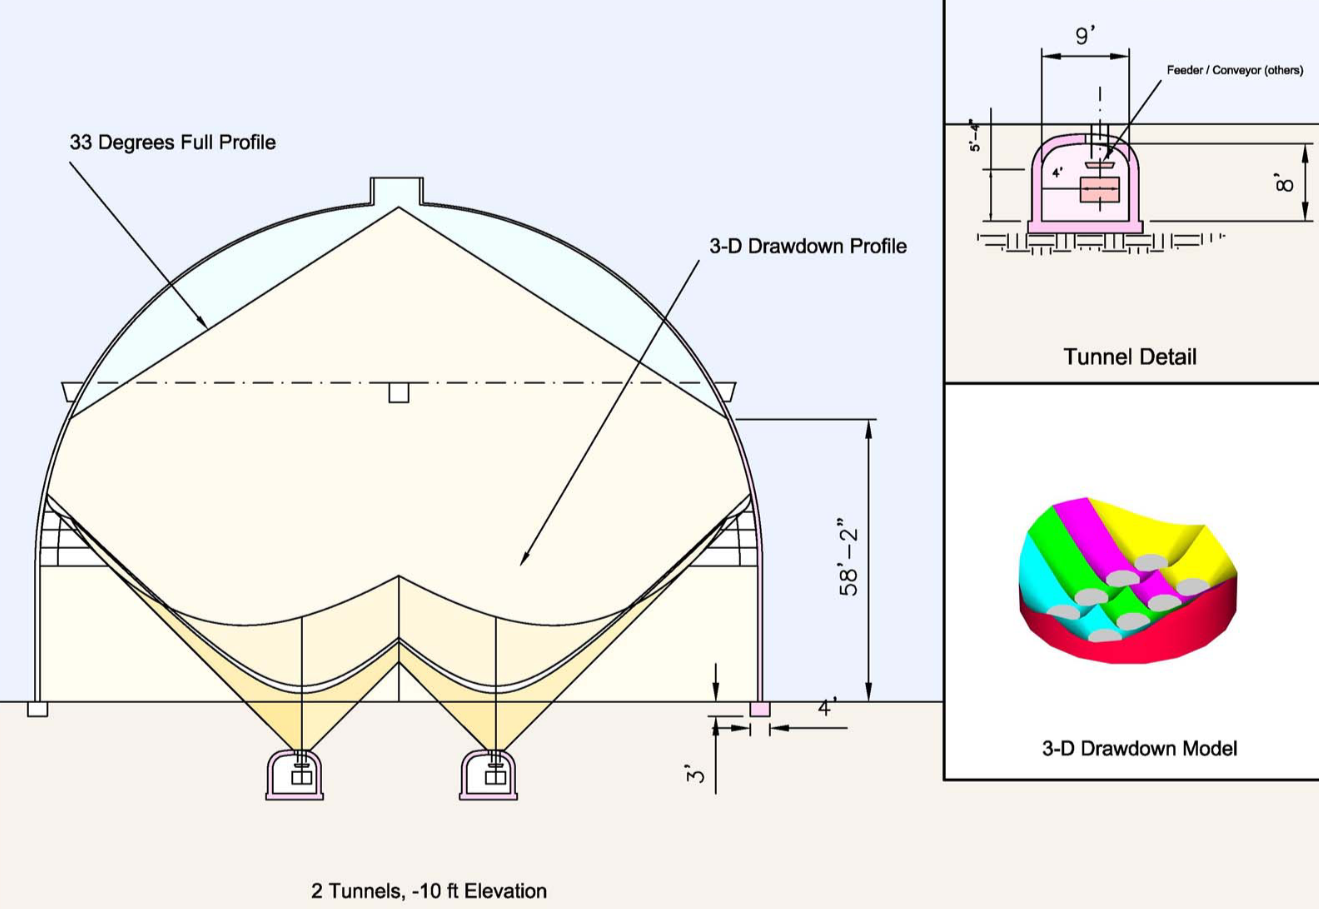 bulk-storage-choices-feature-article-figure 1 -two tunnels gravity feed